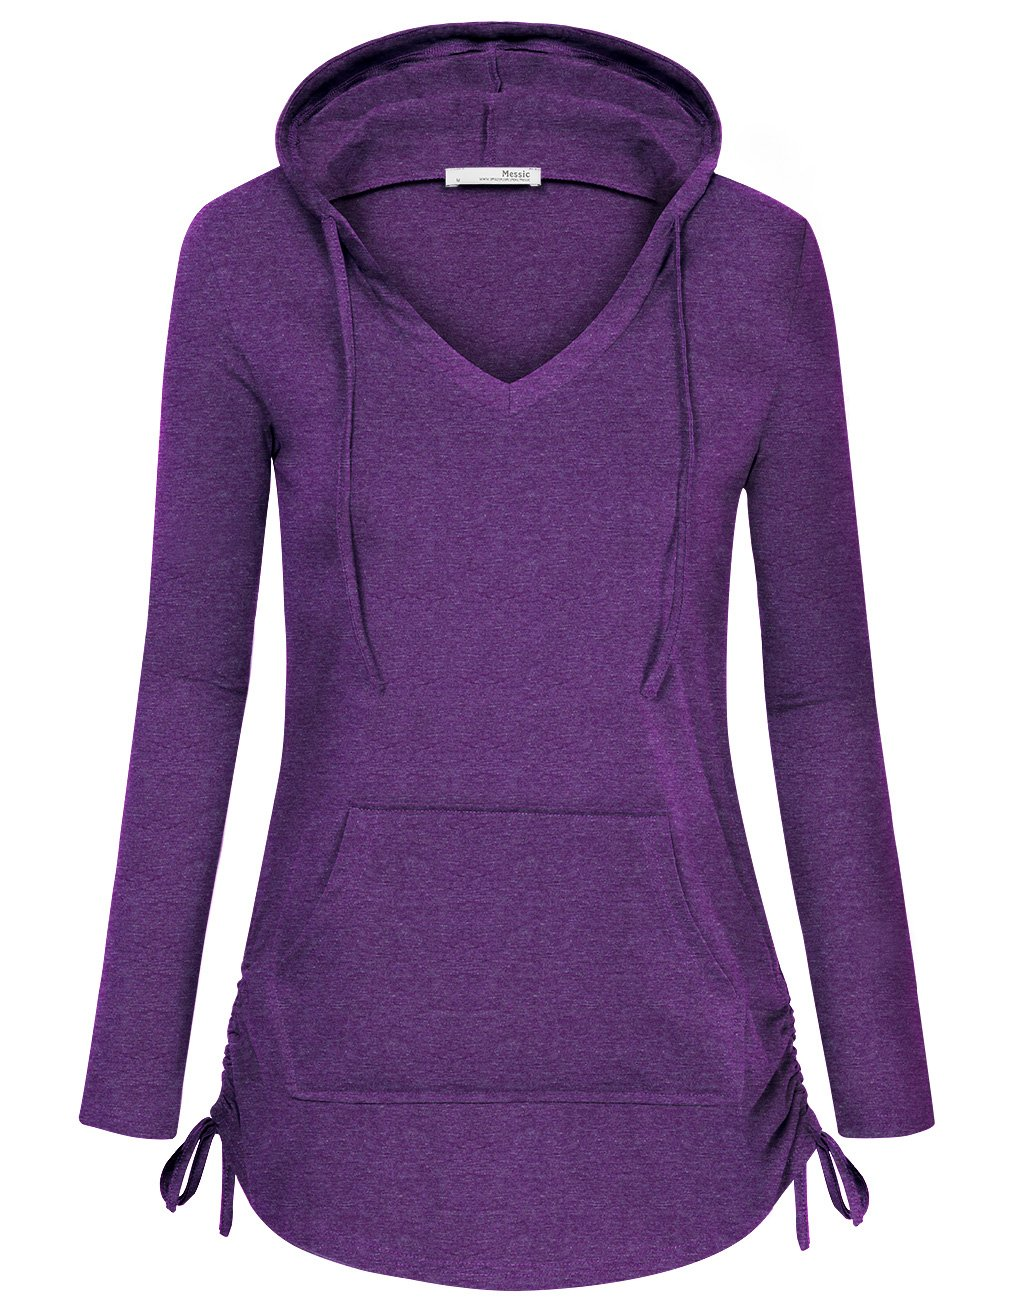 Messic Tunic Hoodies, Womens Fashion Fitted Vintage Long Sleeve V Neck Pullover Sweatshirt with Kangaroo Pocket (X-Large, Violet) by Messic